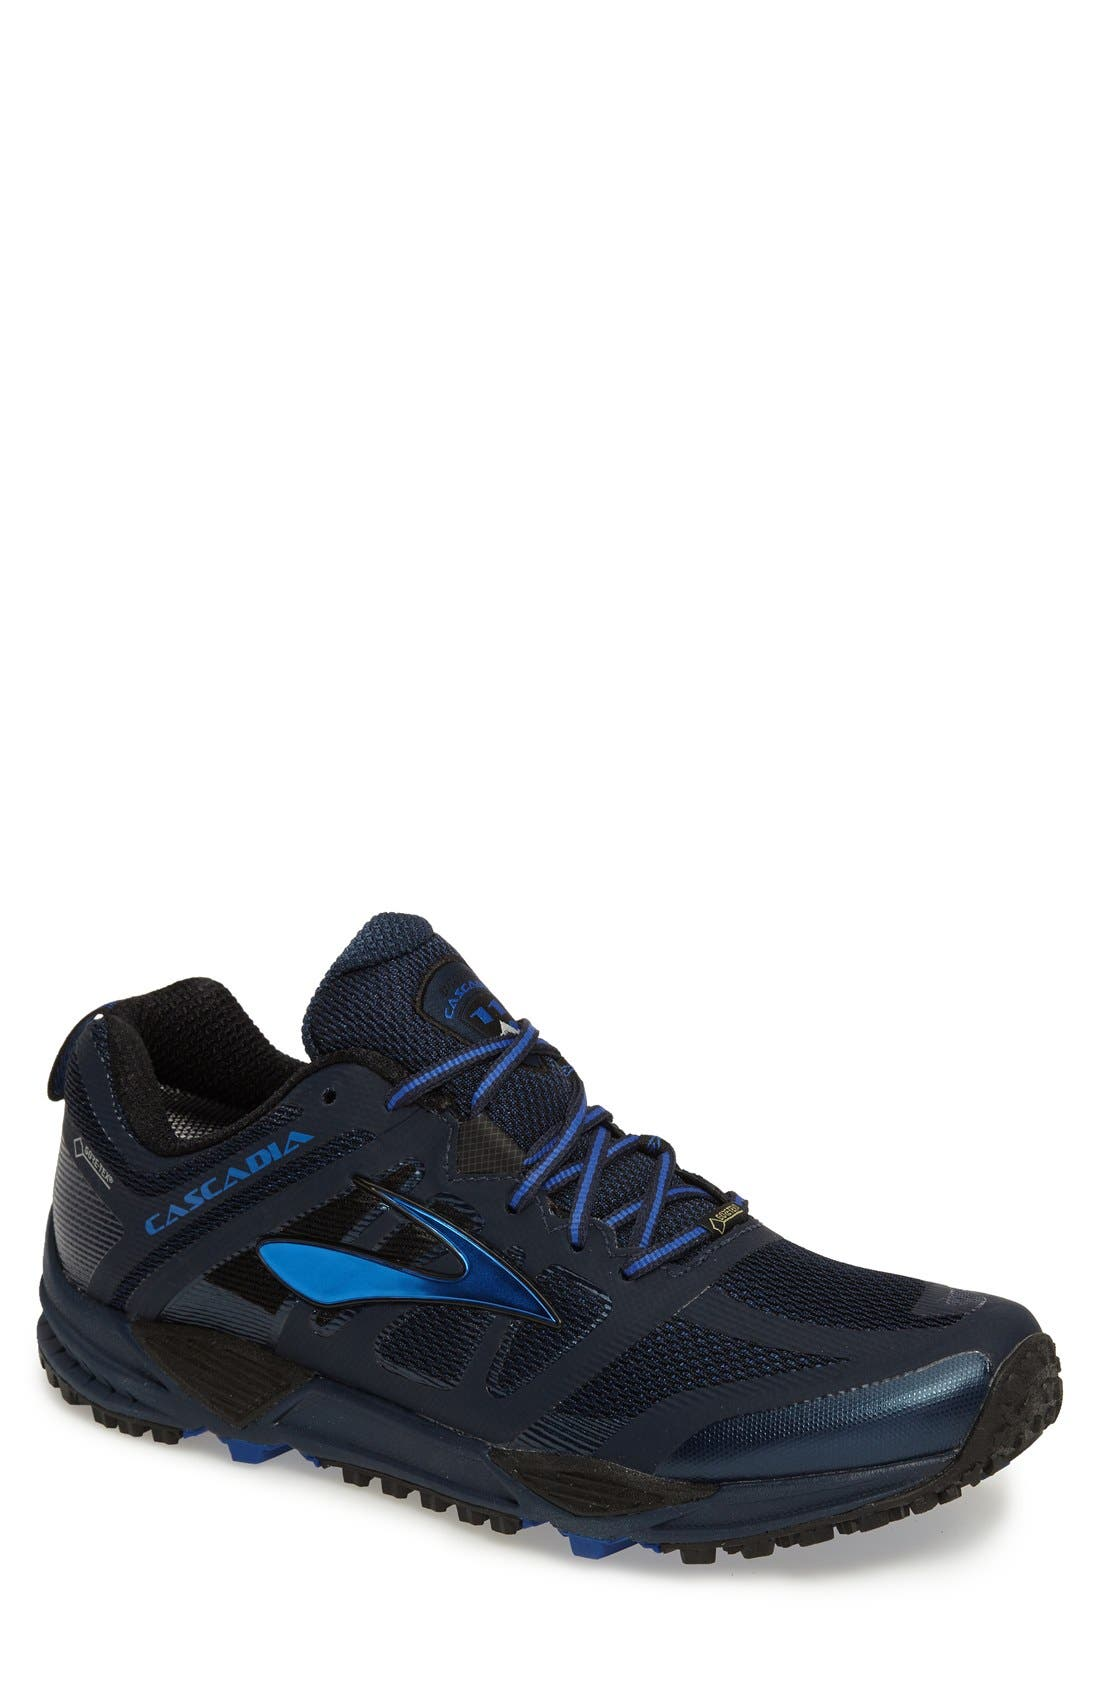 Cascadia 11 GTX Trail Running Shoe,                         Main,                         color, Dress Blue/ Electric Blue